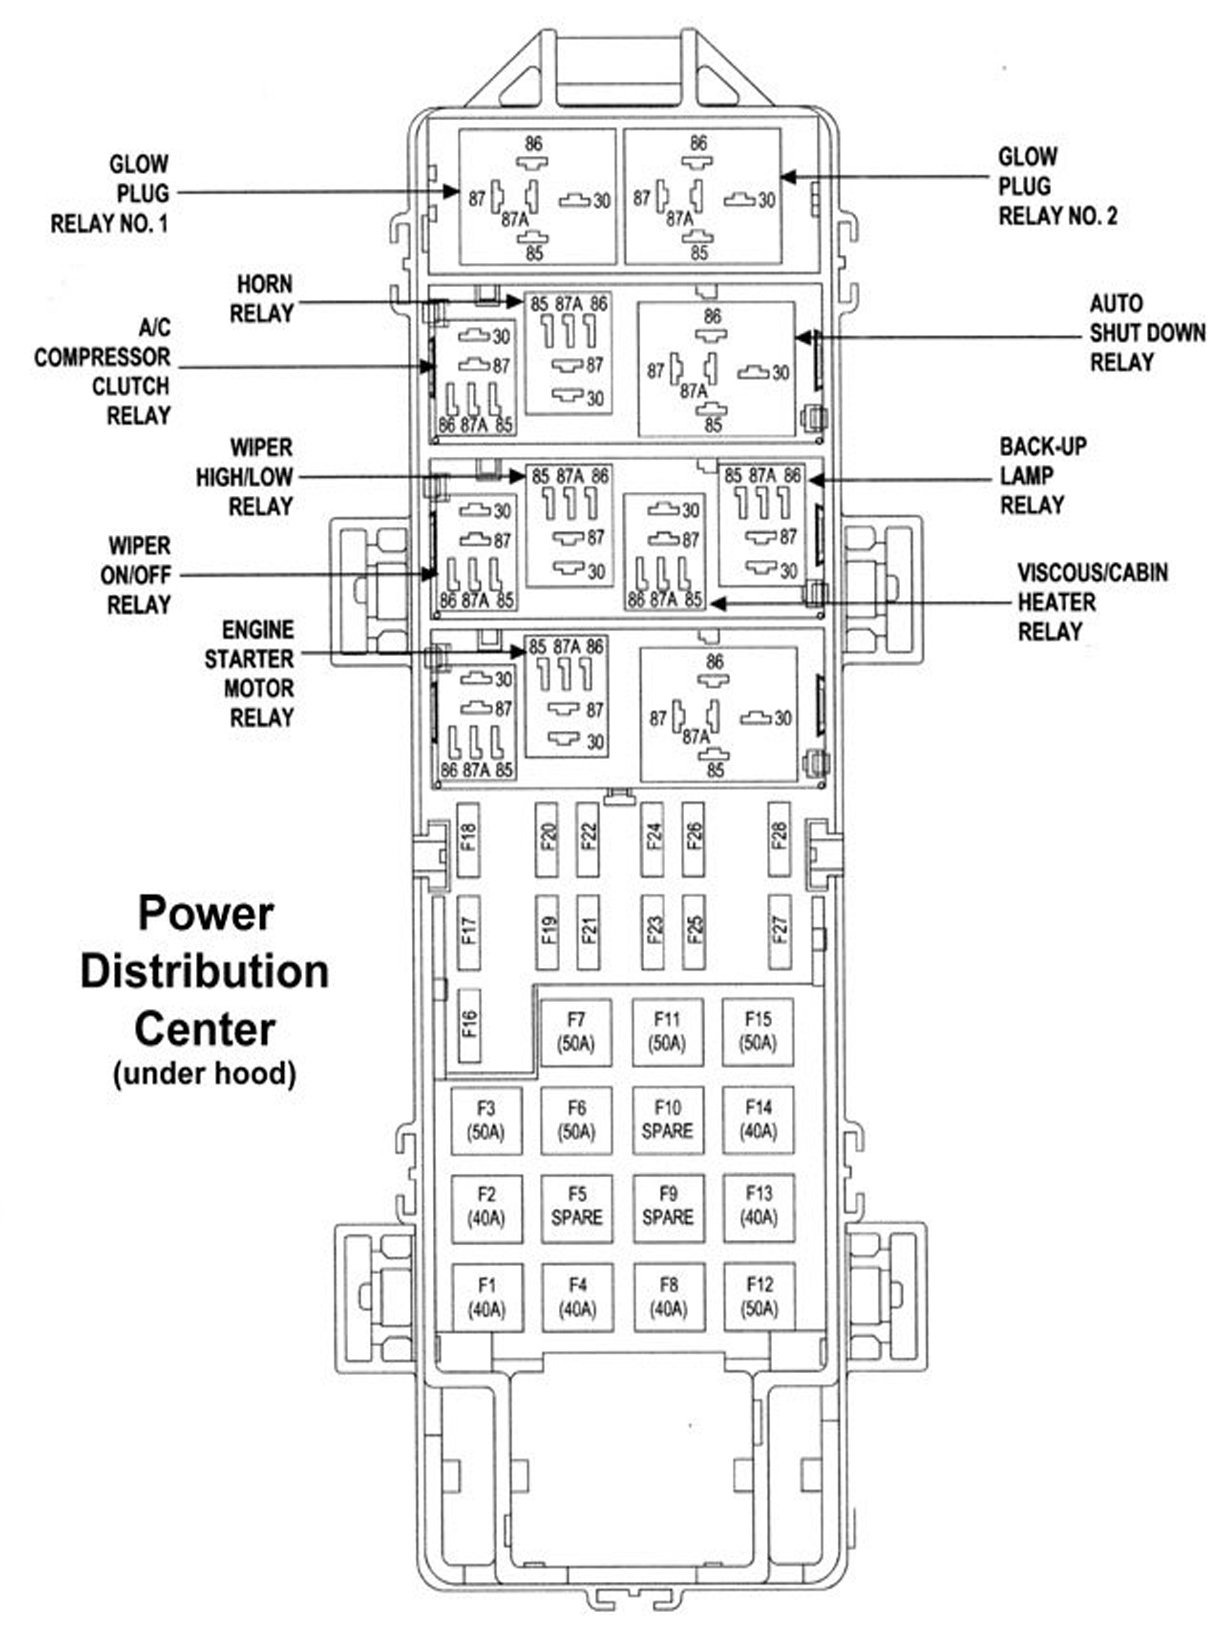 hight resolution of jeep grand cherokee wj 1999 to 2004 fuse box diagram